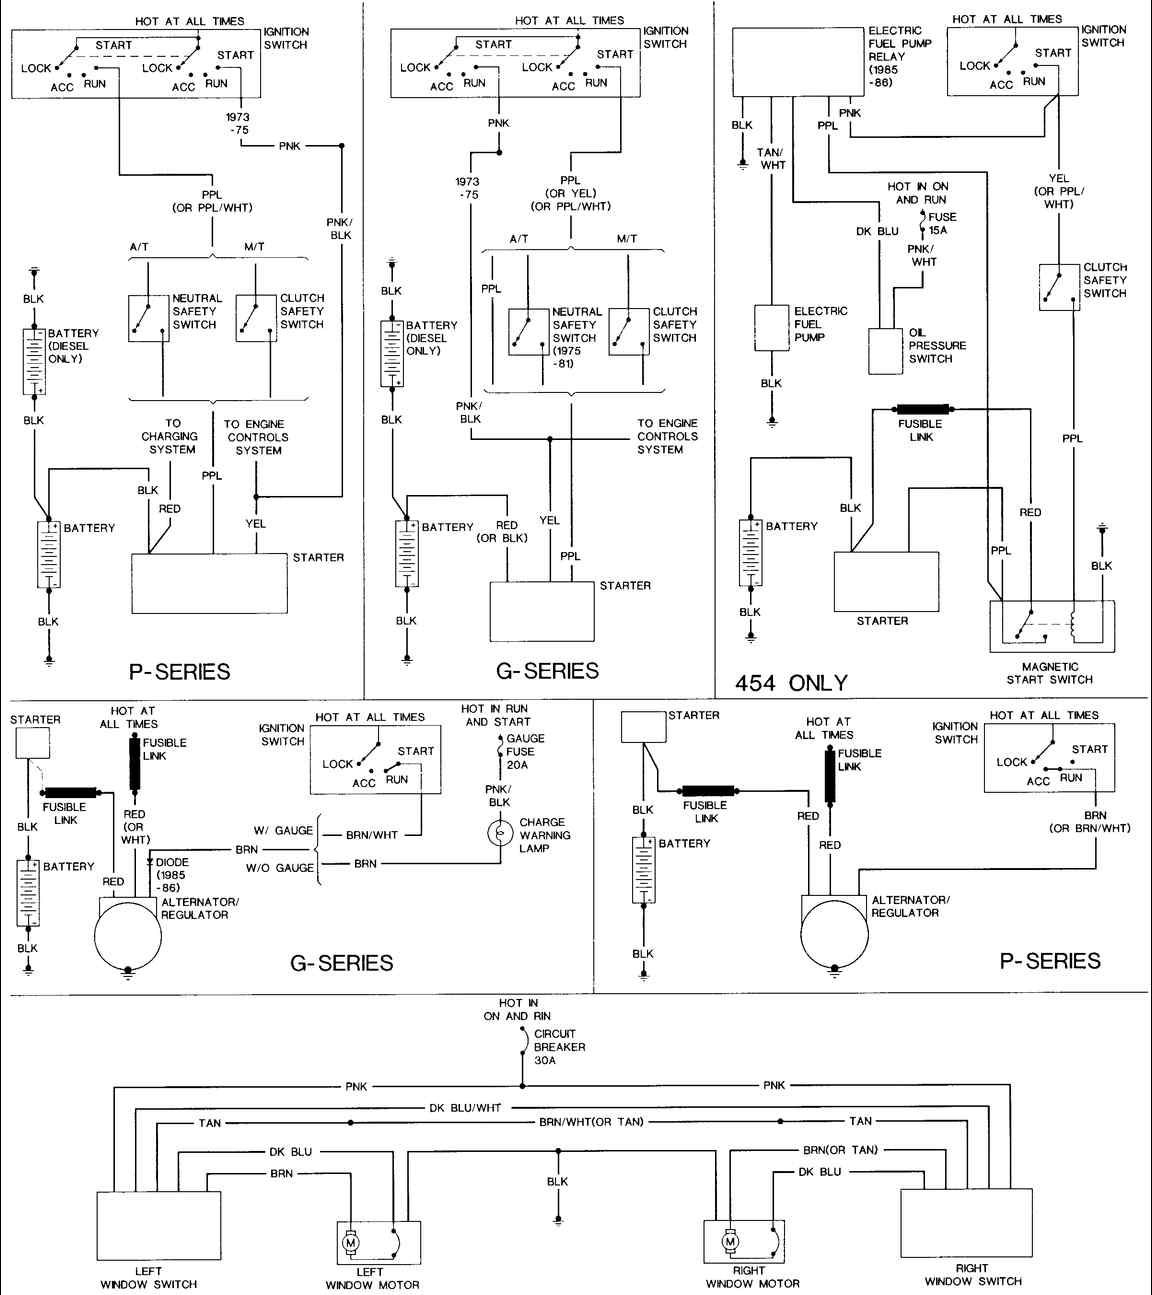 0c73623a181dc376dbb4777e2029d285 1975 dodge truck wiring diagram 1972 dodge d100 wiring diagram 81 Dodge Alternator Diagram at creativeand.co